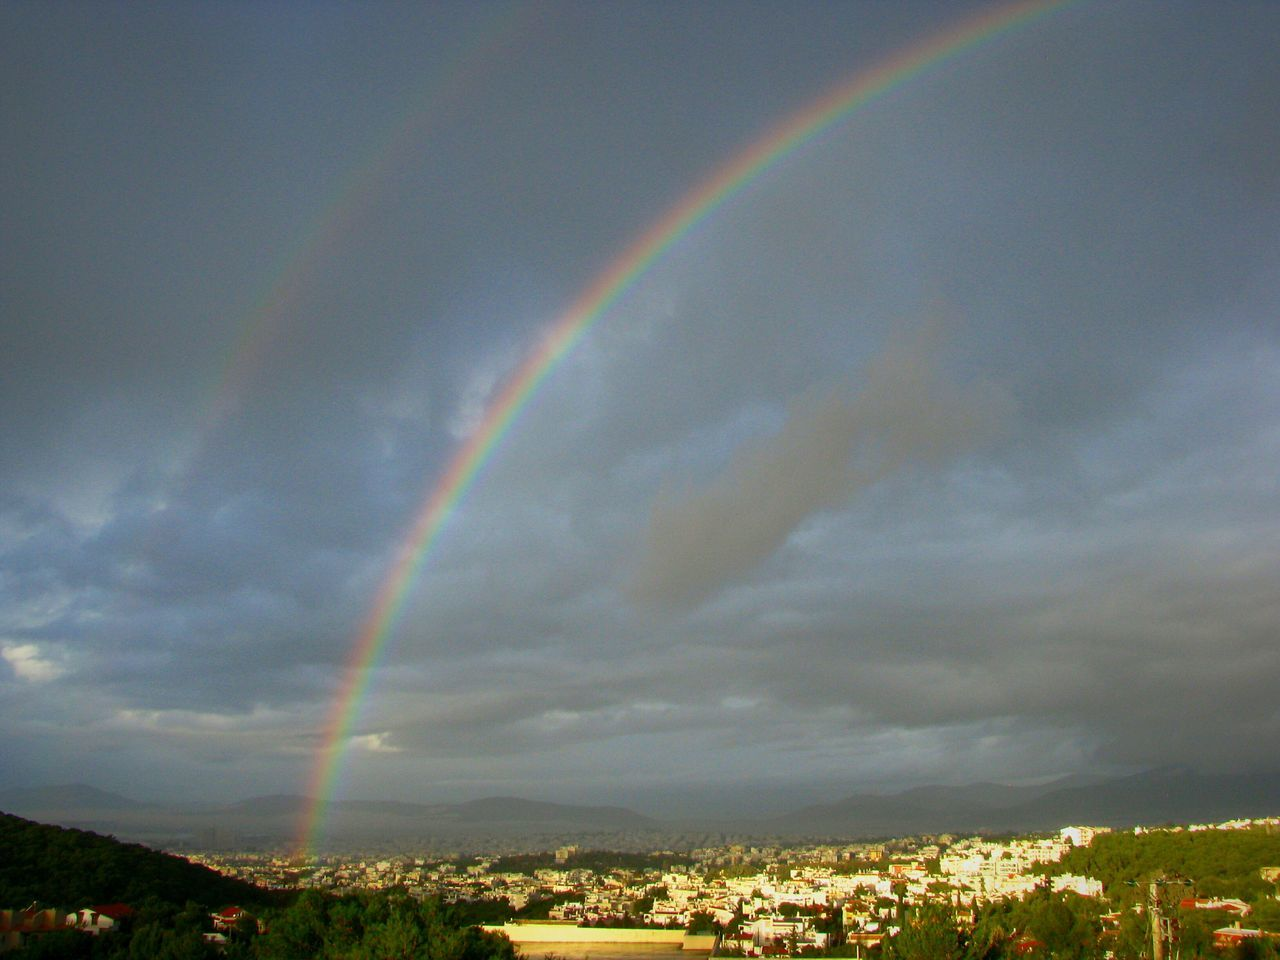 Adapted To The City Double Rainbow Double Rainbows Rainbow Rainbow Colors Rainbows Athens Greece City Urban Landscape Landscapes Beauty In Nature Landscape Cloudscape Sky Scenics Nature Rain Weather Dramatic Sky Cloud - Sky Storm Thunderstorm Clouds Cloudy Day